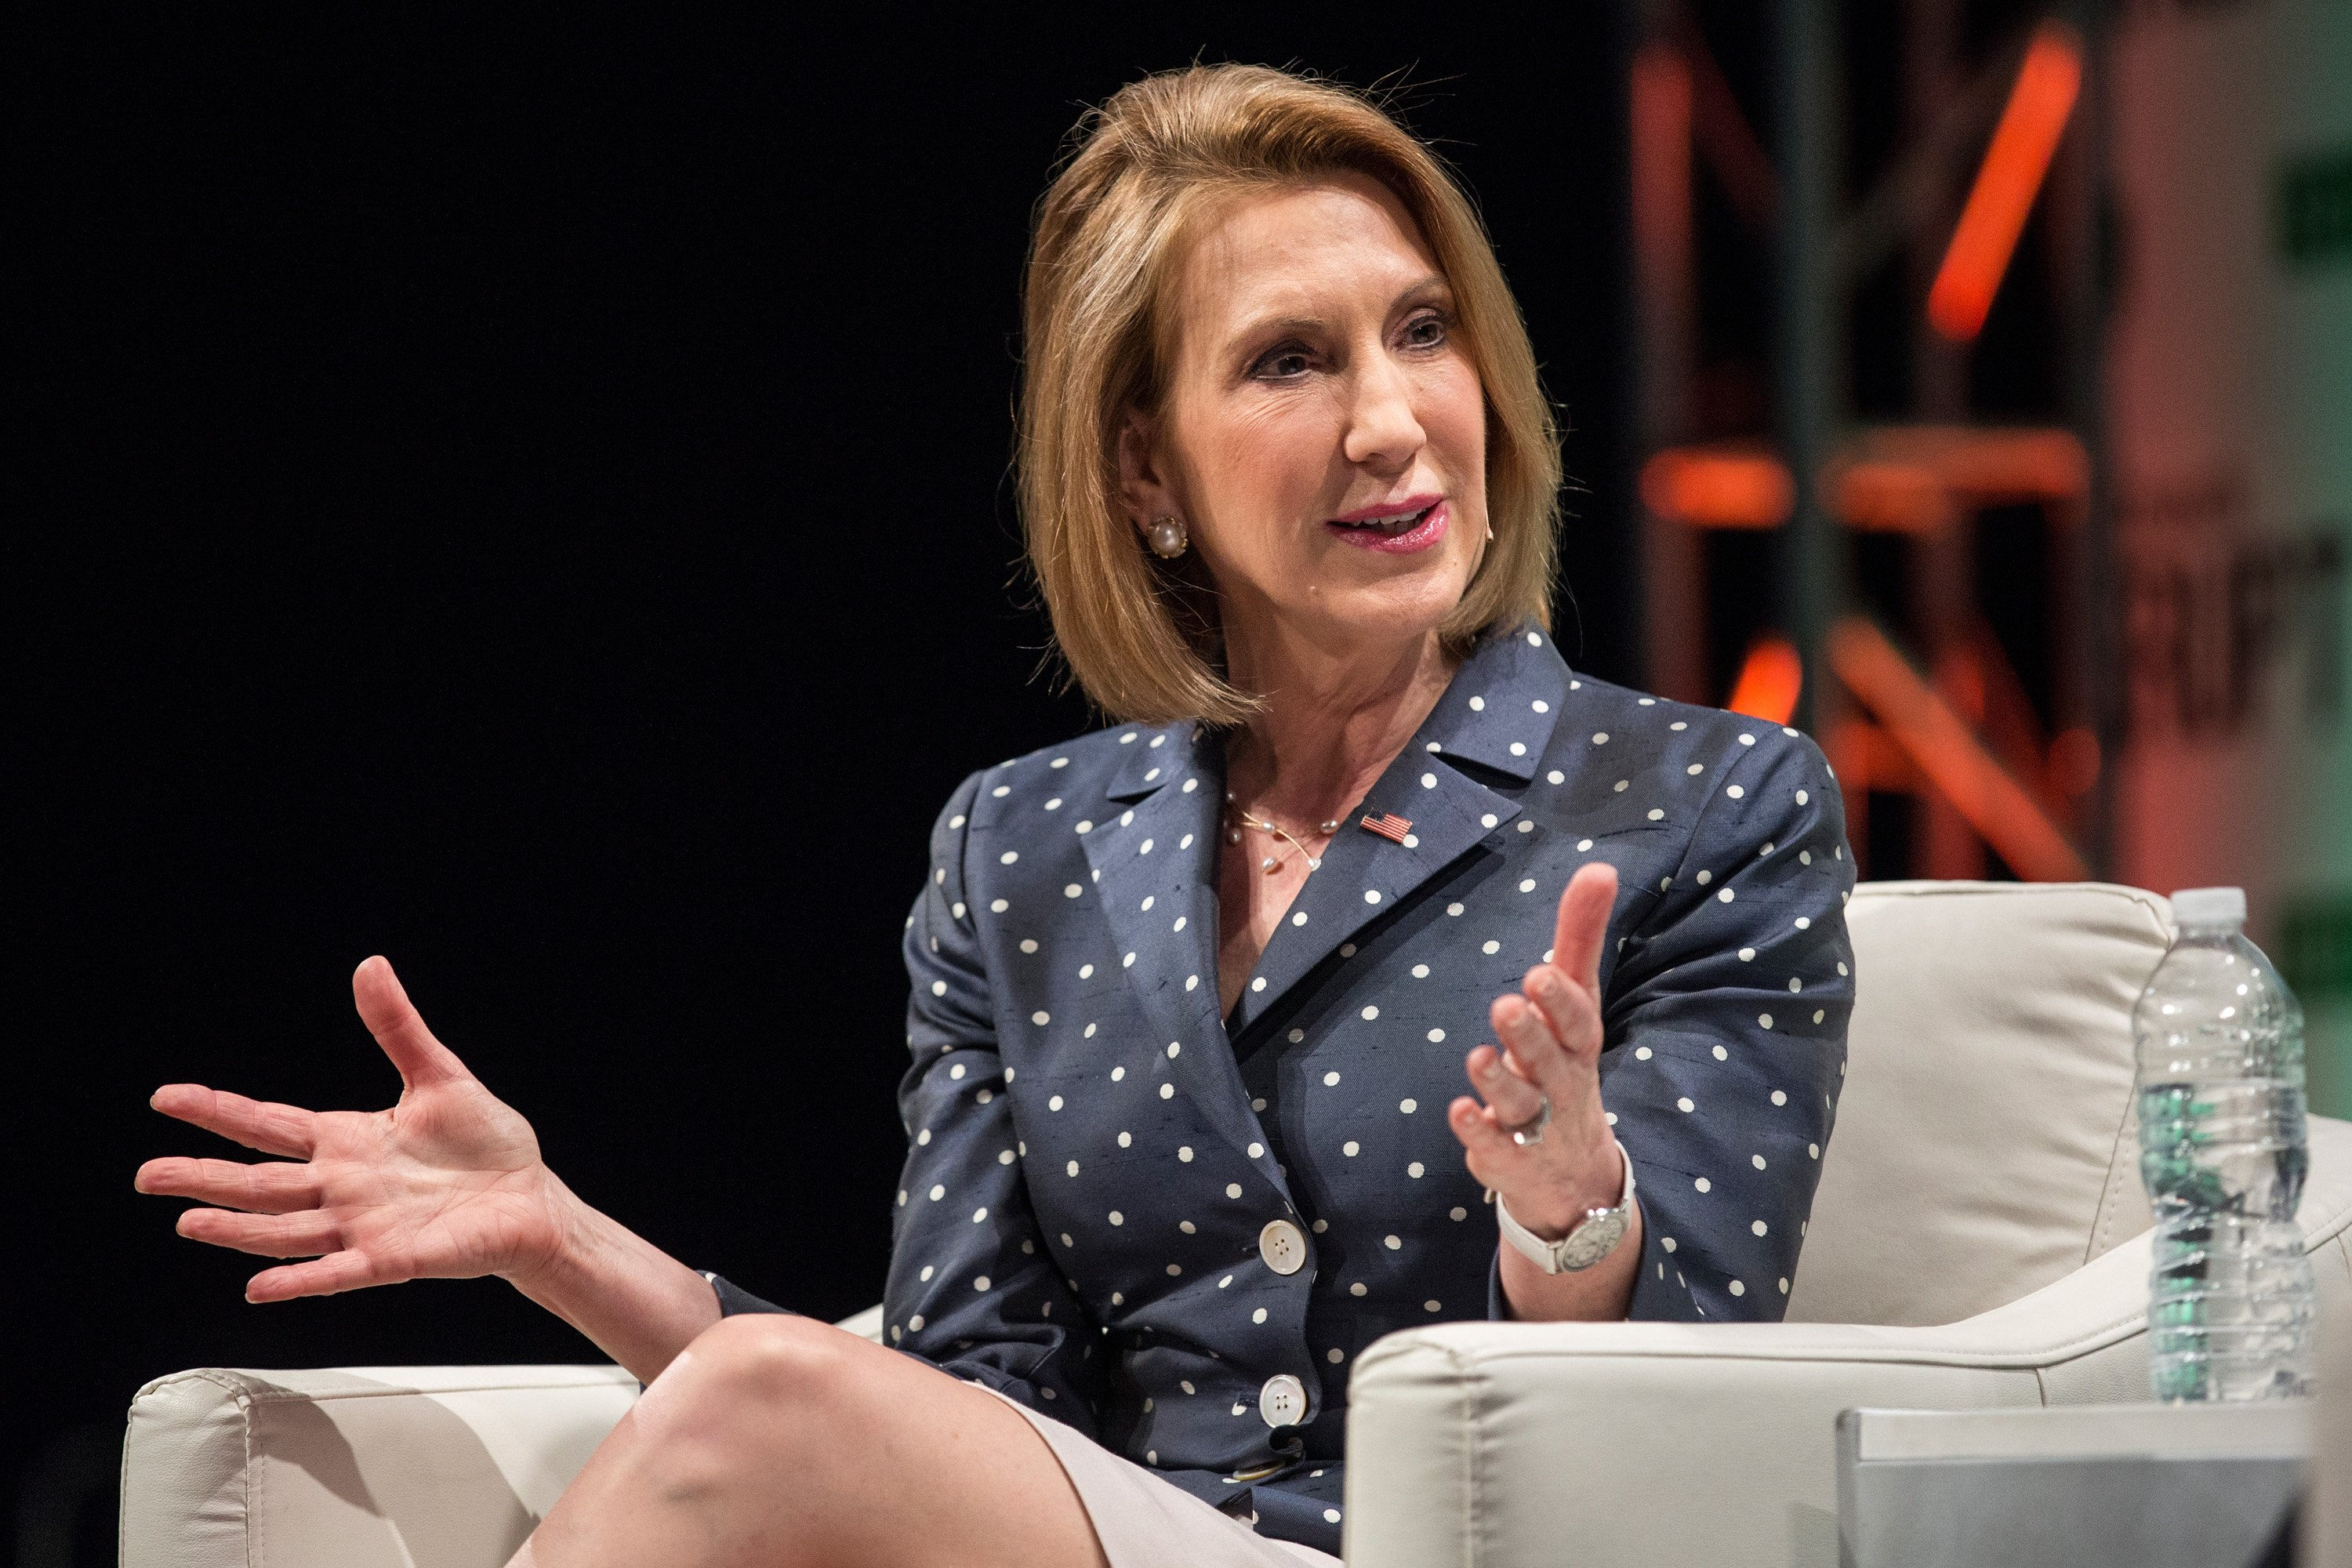 Republican presidential hopeful Carly Fiorina speaks at TechCrunchÕs Disrupt conference on May 5, 2015 in New York City.